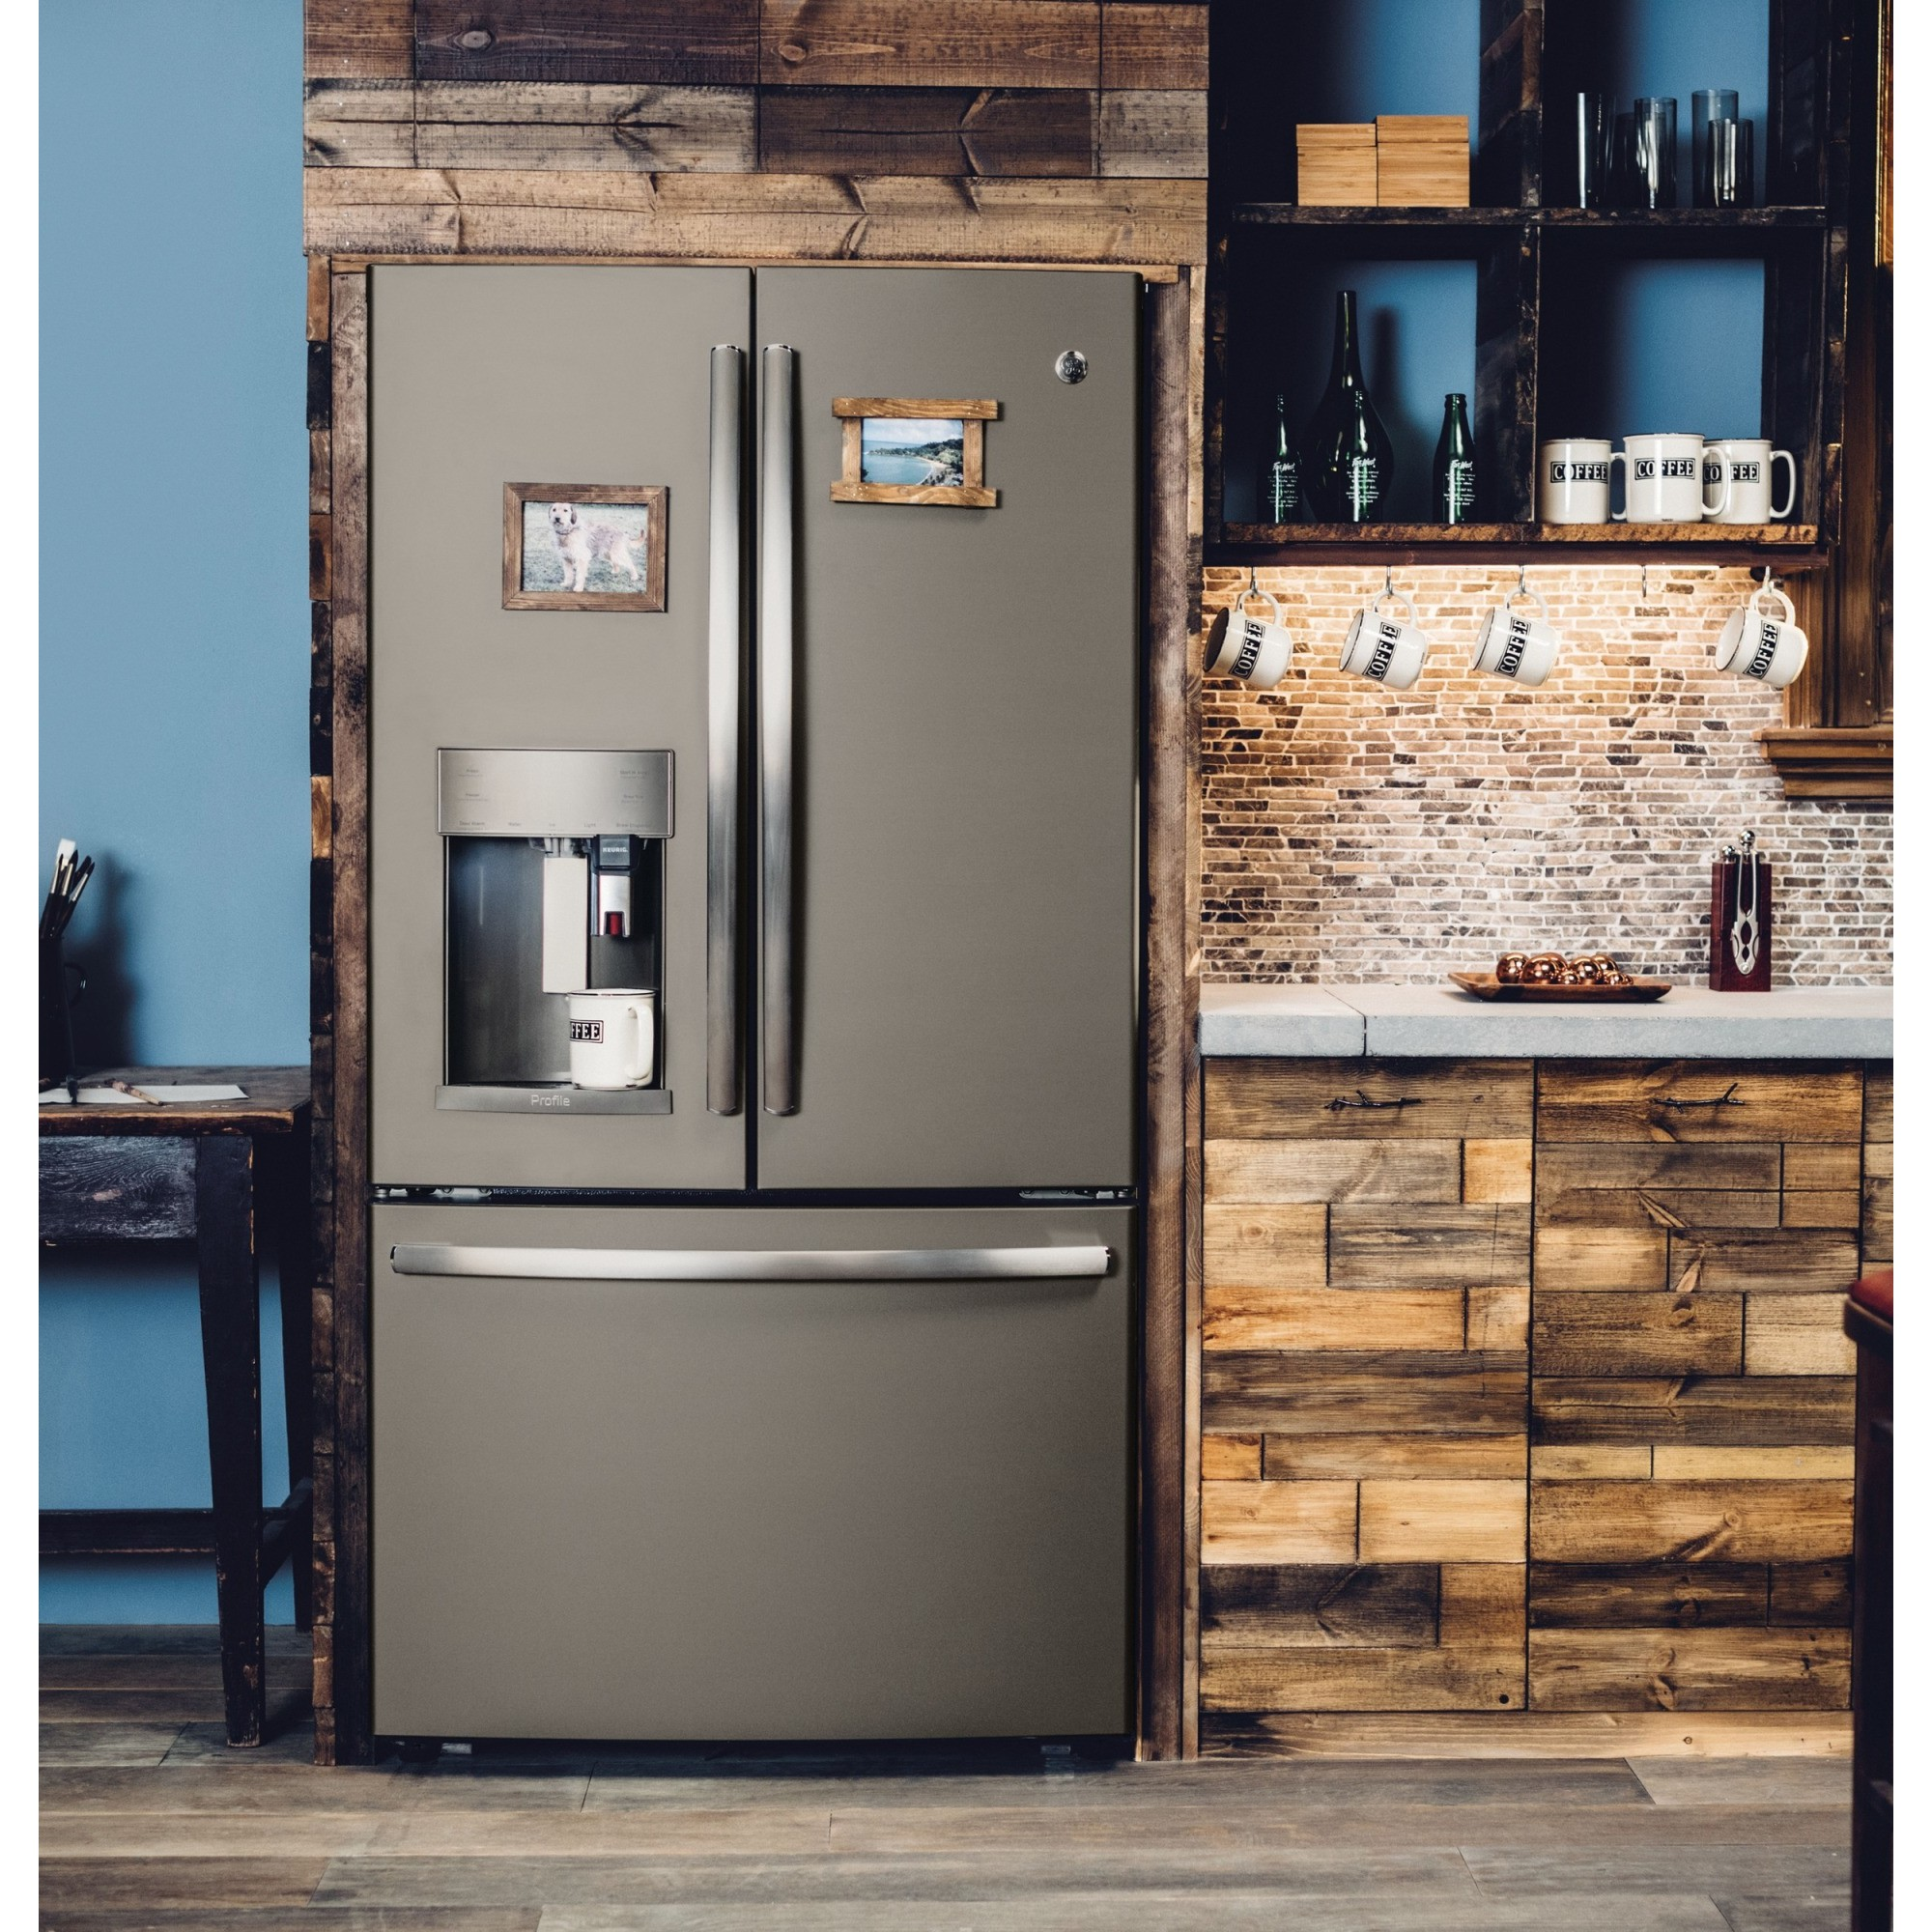 Pfe28pmkes Ge Profile 27 8 Cu Ft French Door Refrigerator